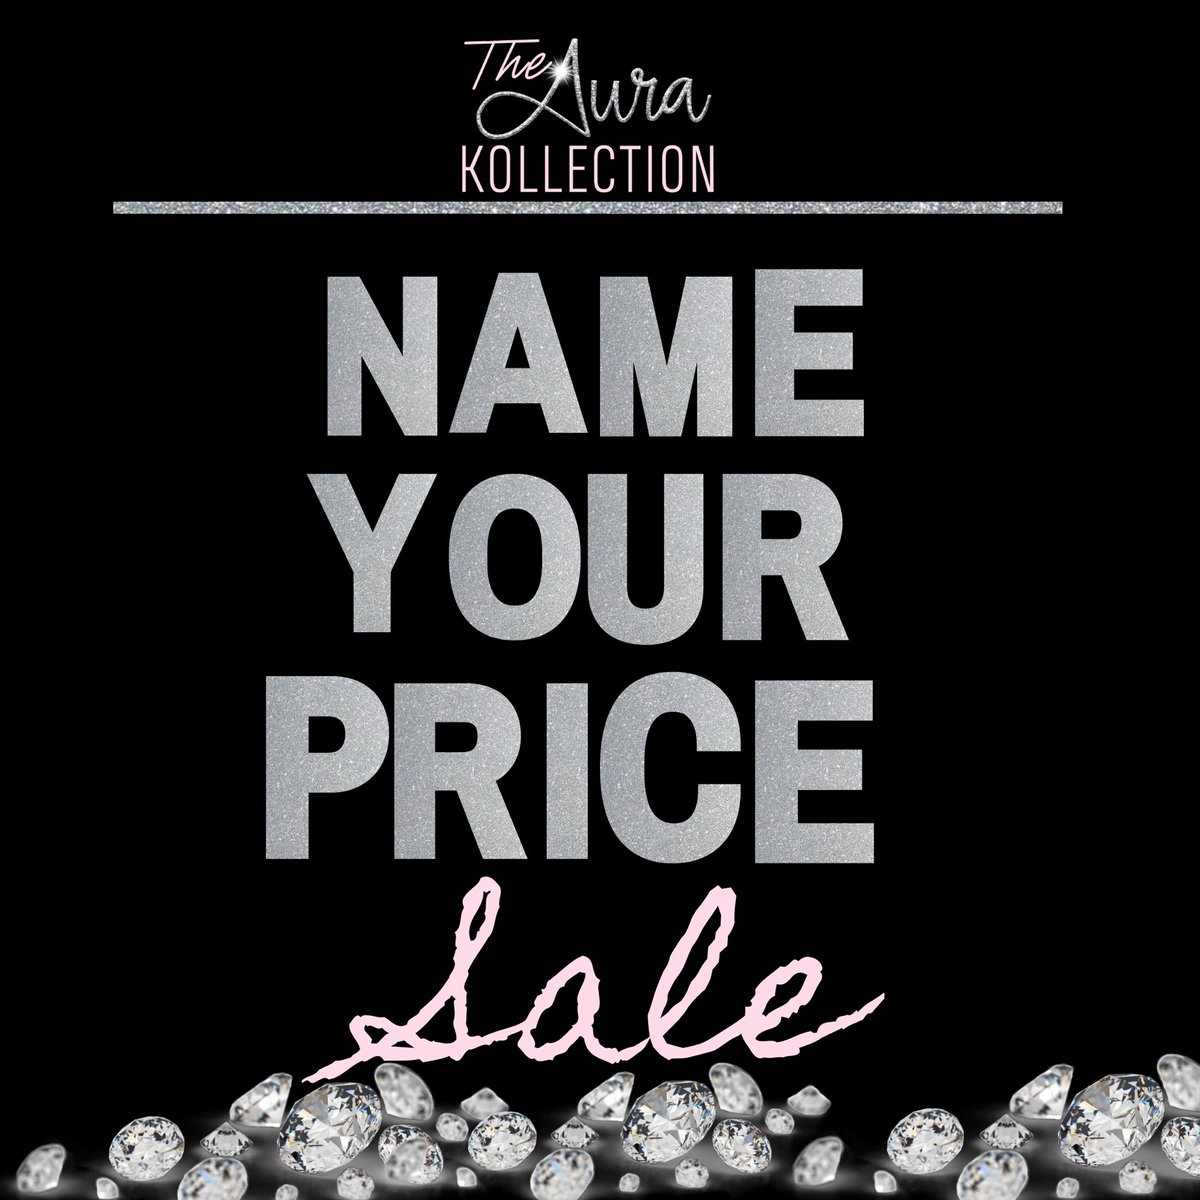 SHOP ON YOUR OWN BUDGET! 💕 NAME YOUR PRICE SALE HAS STARTED TODAY & WILL END SATURDAY! NOTHING IS OFF LIMITS! SERIOUS INQUIRES ONLY! #WSSU #NCAT #NCCU #UNCG #UMES #JCSU #bennett #UNCC